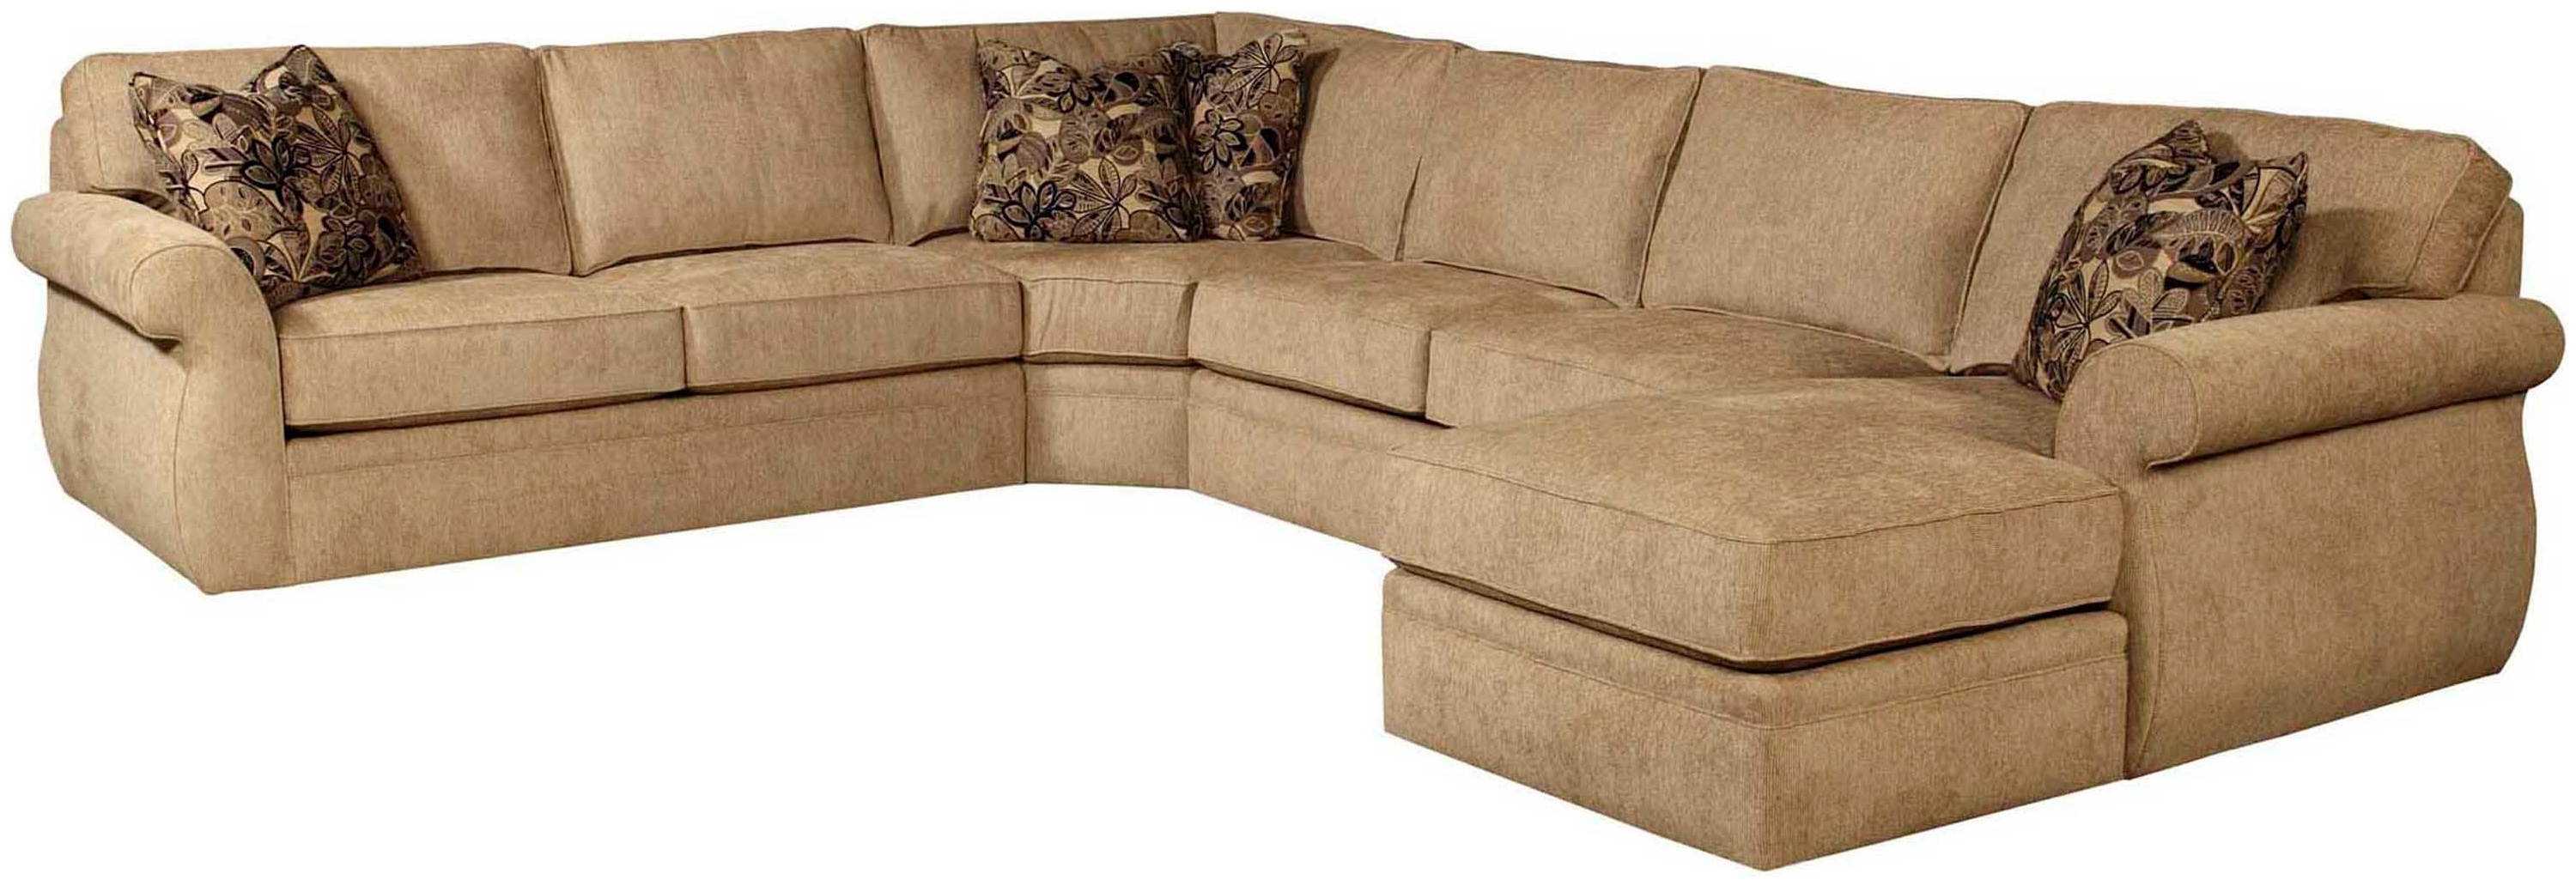 Well Known Broyhill Veronica 4Pc Chaise Sectional With Regard To Sectional Sofas At Broyhill (View 9 of 15)